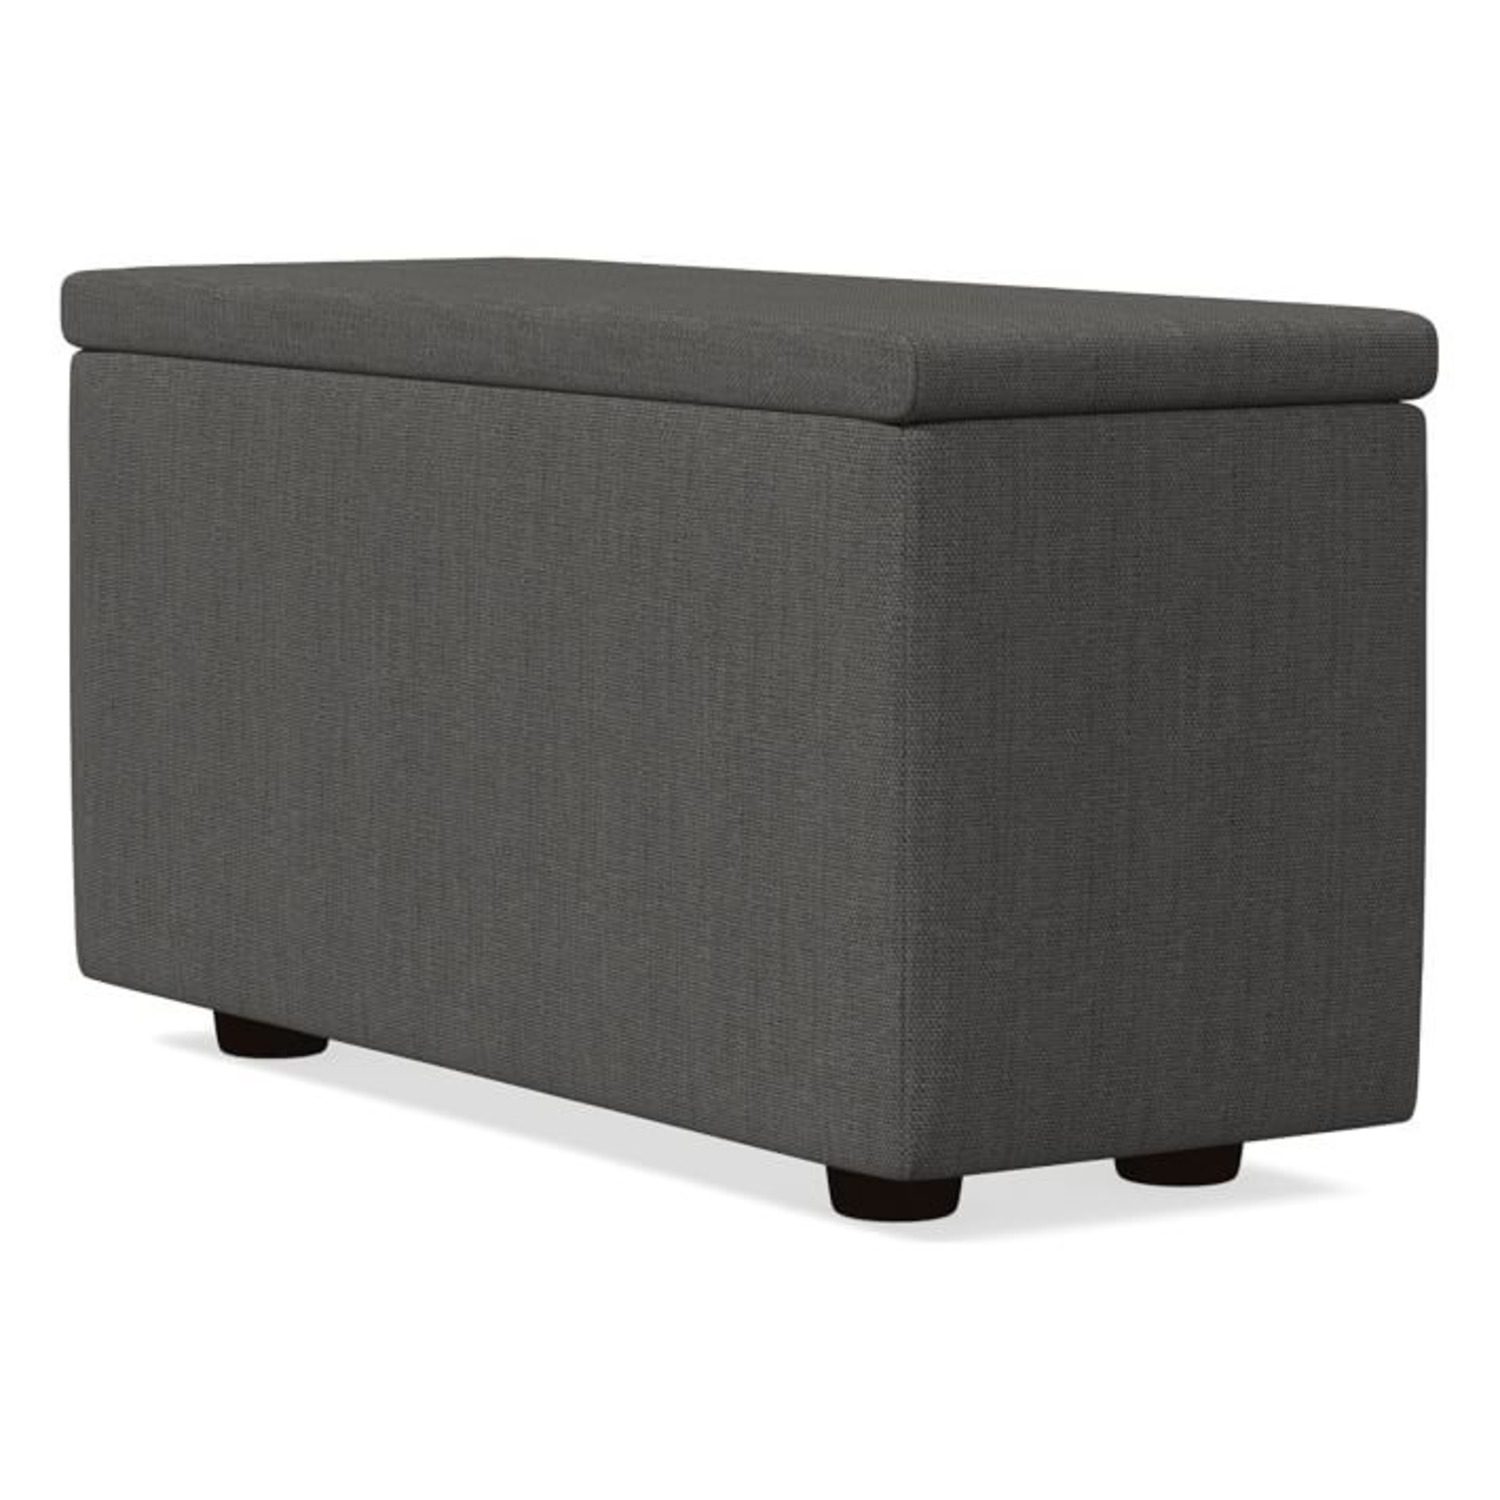 West Elm Enzo Sectional Arm With Storage - image-1